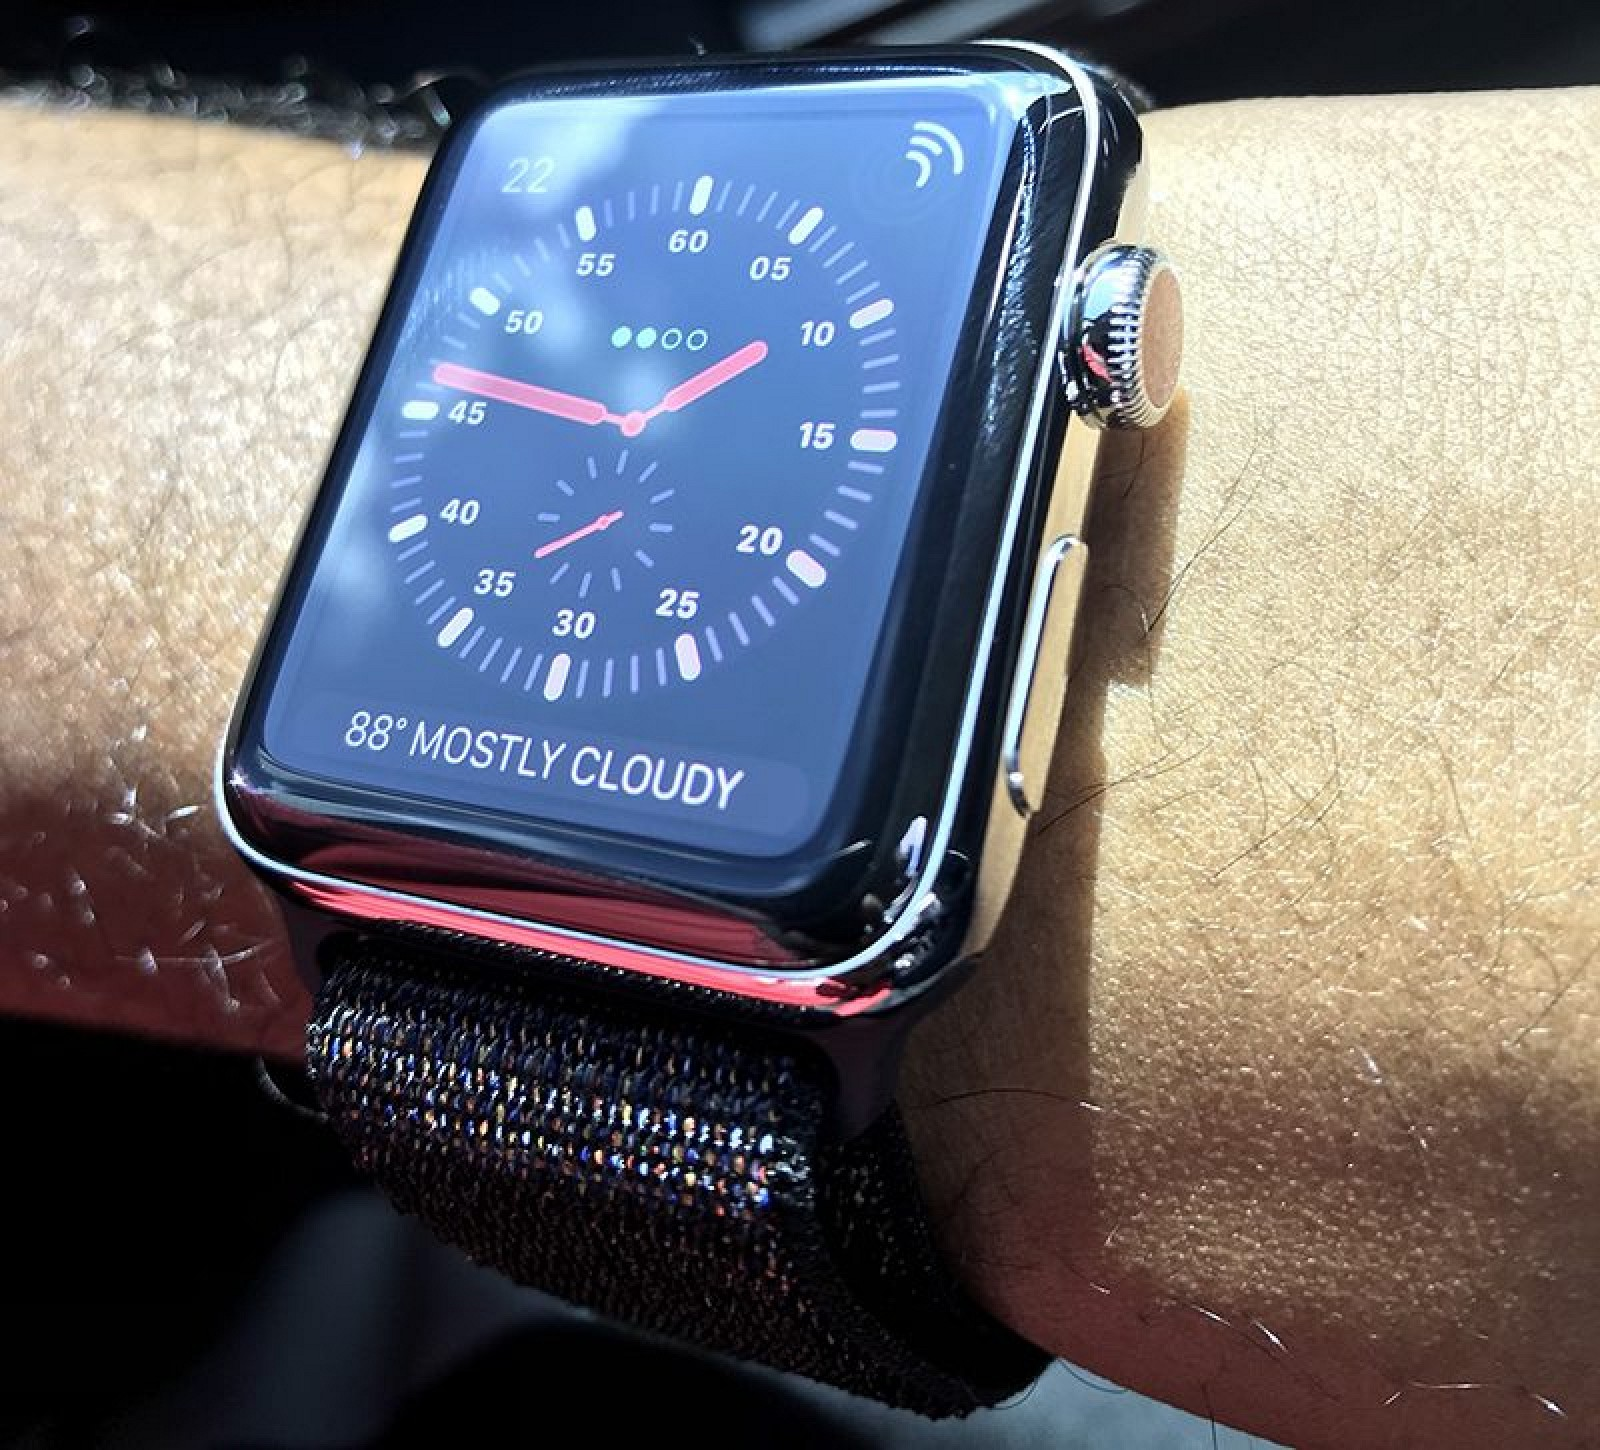 Early Adopters of Apple Watch Series 3 Share First Impressions and Unboxing Photos